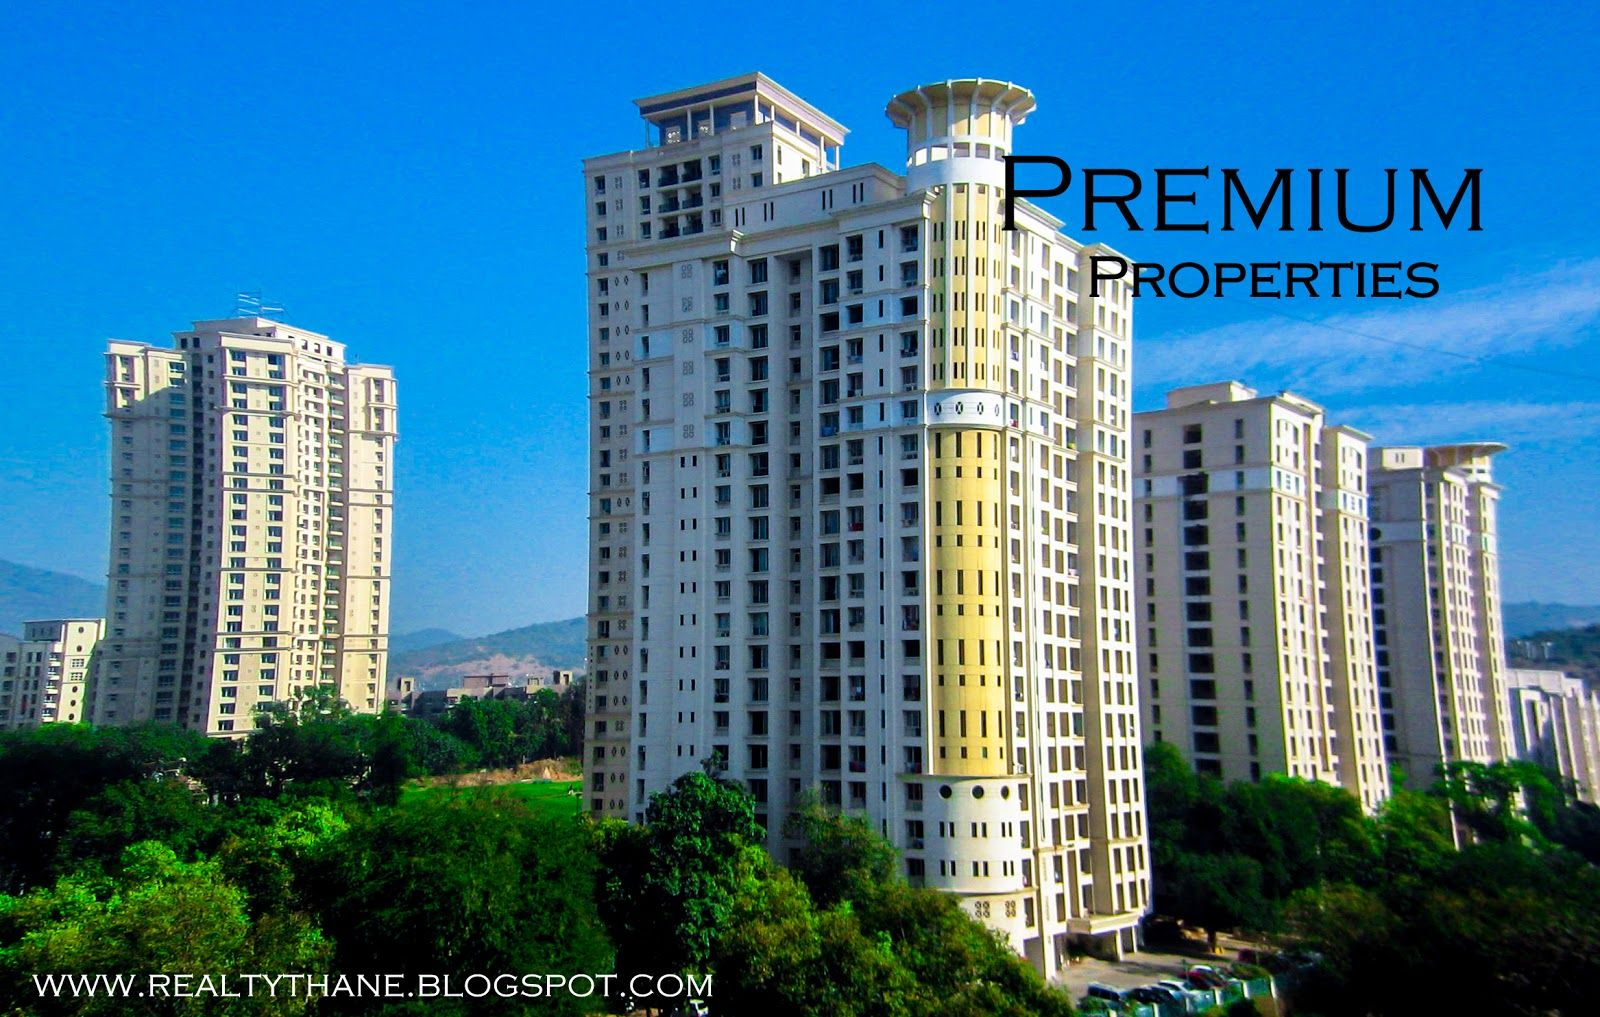 Brookhill Hiranandani Estate 4bhk For Avon Wellington Tiara In Thane Mumbai Building Apartment Flats